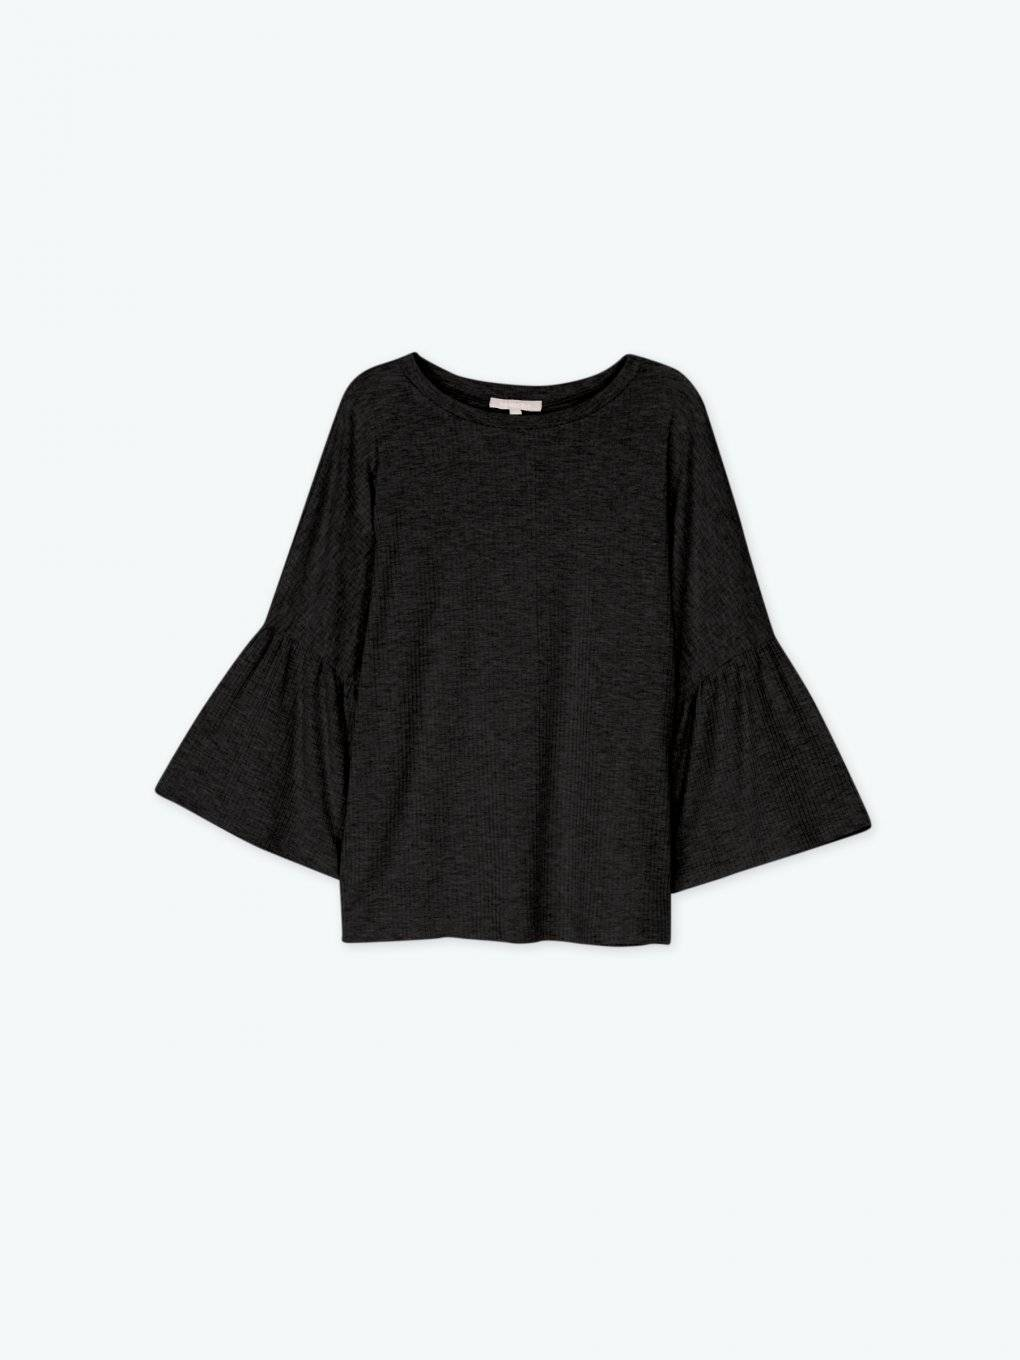 Wide sleeve top